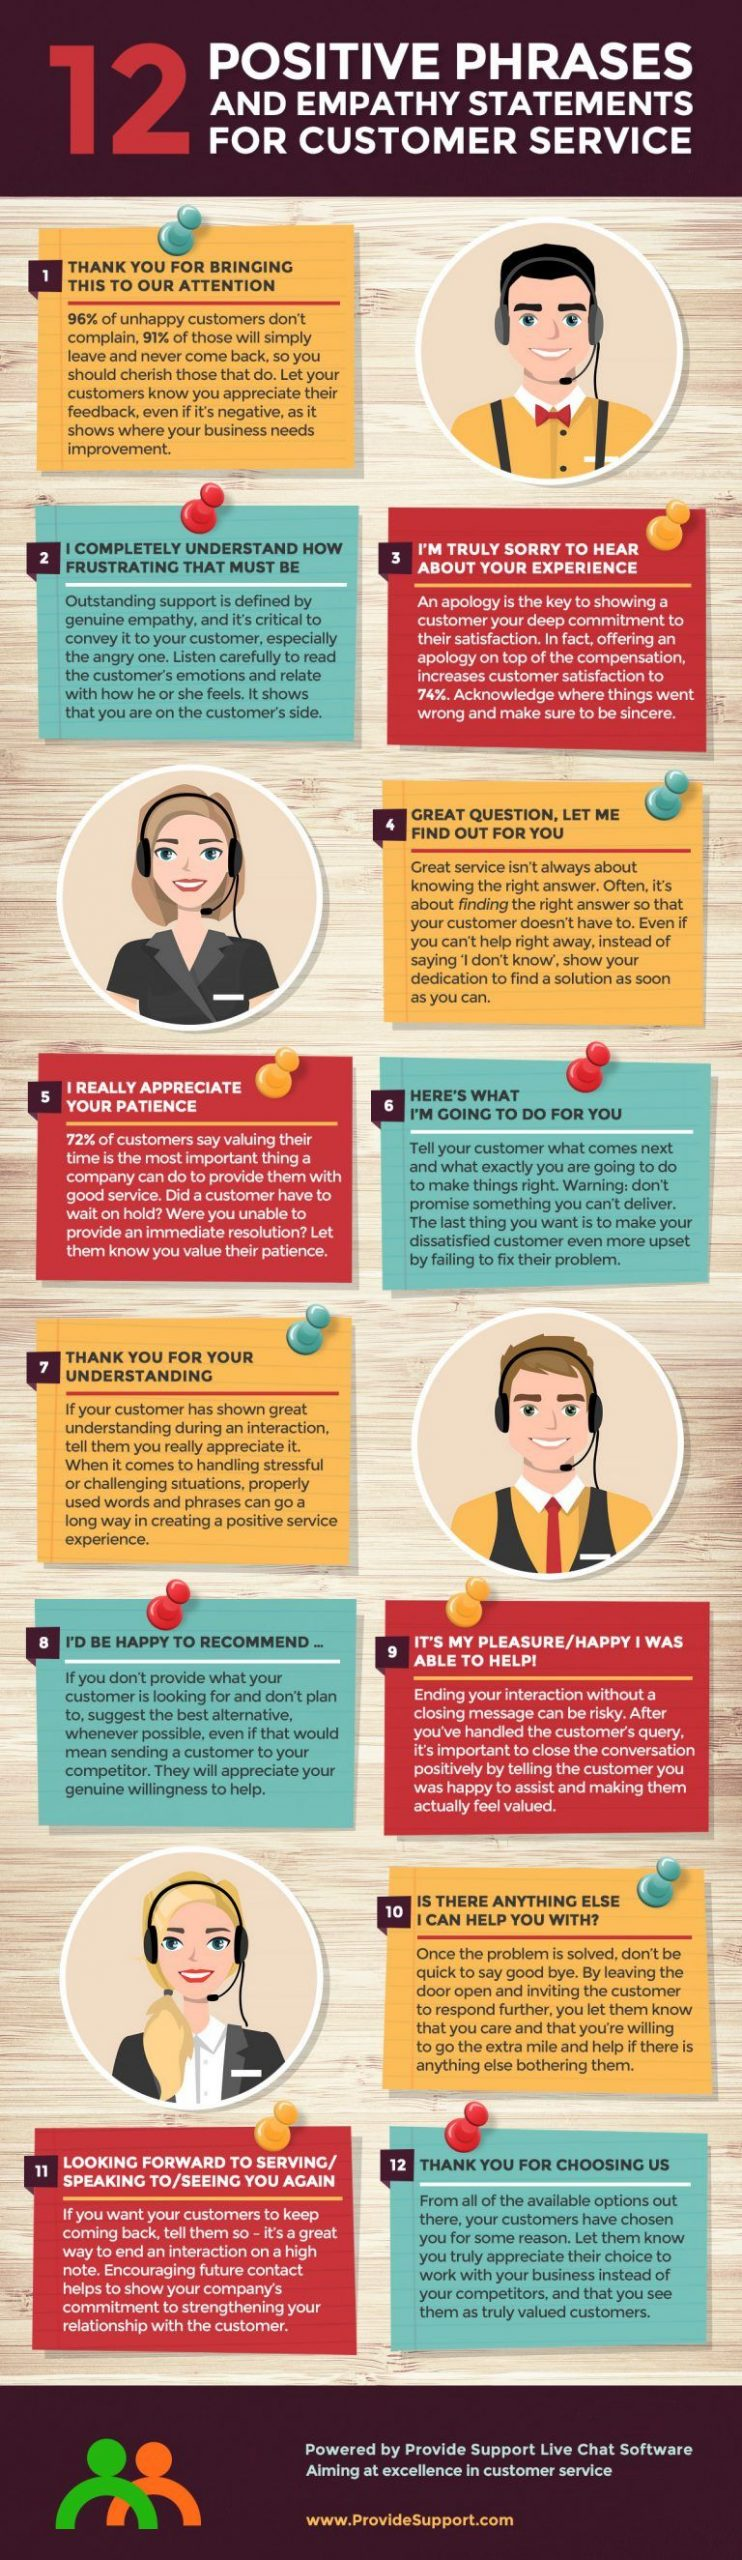 12 Positive Phrases and Empathy Statements for Customer Service Infographic